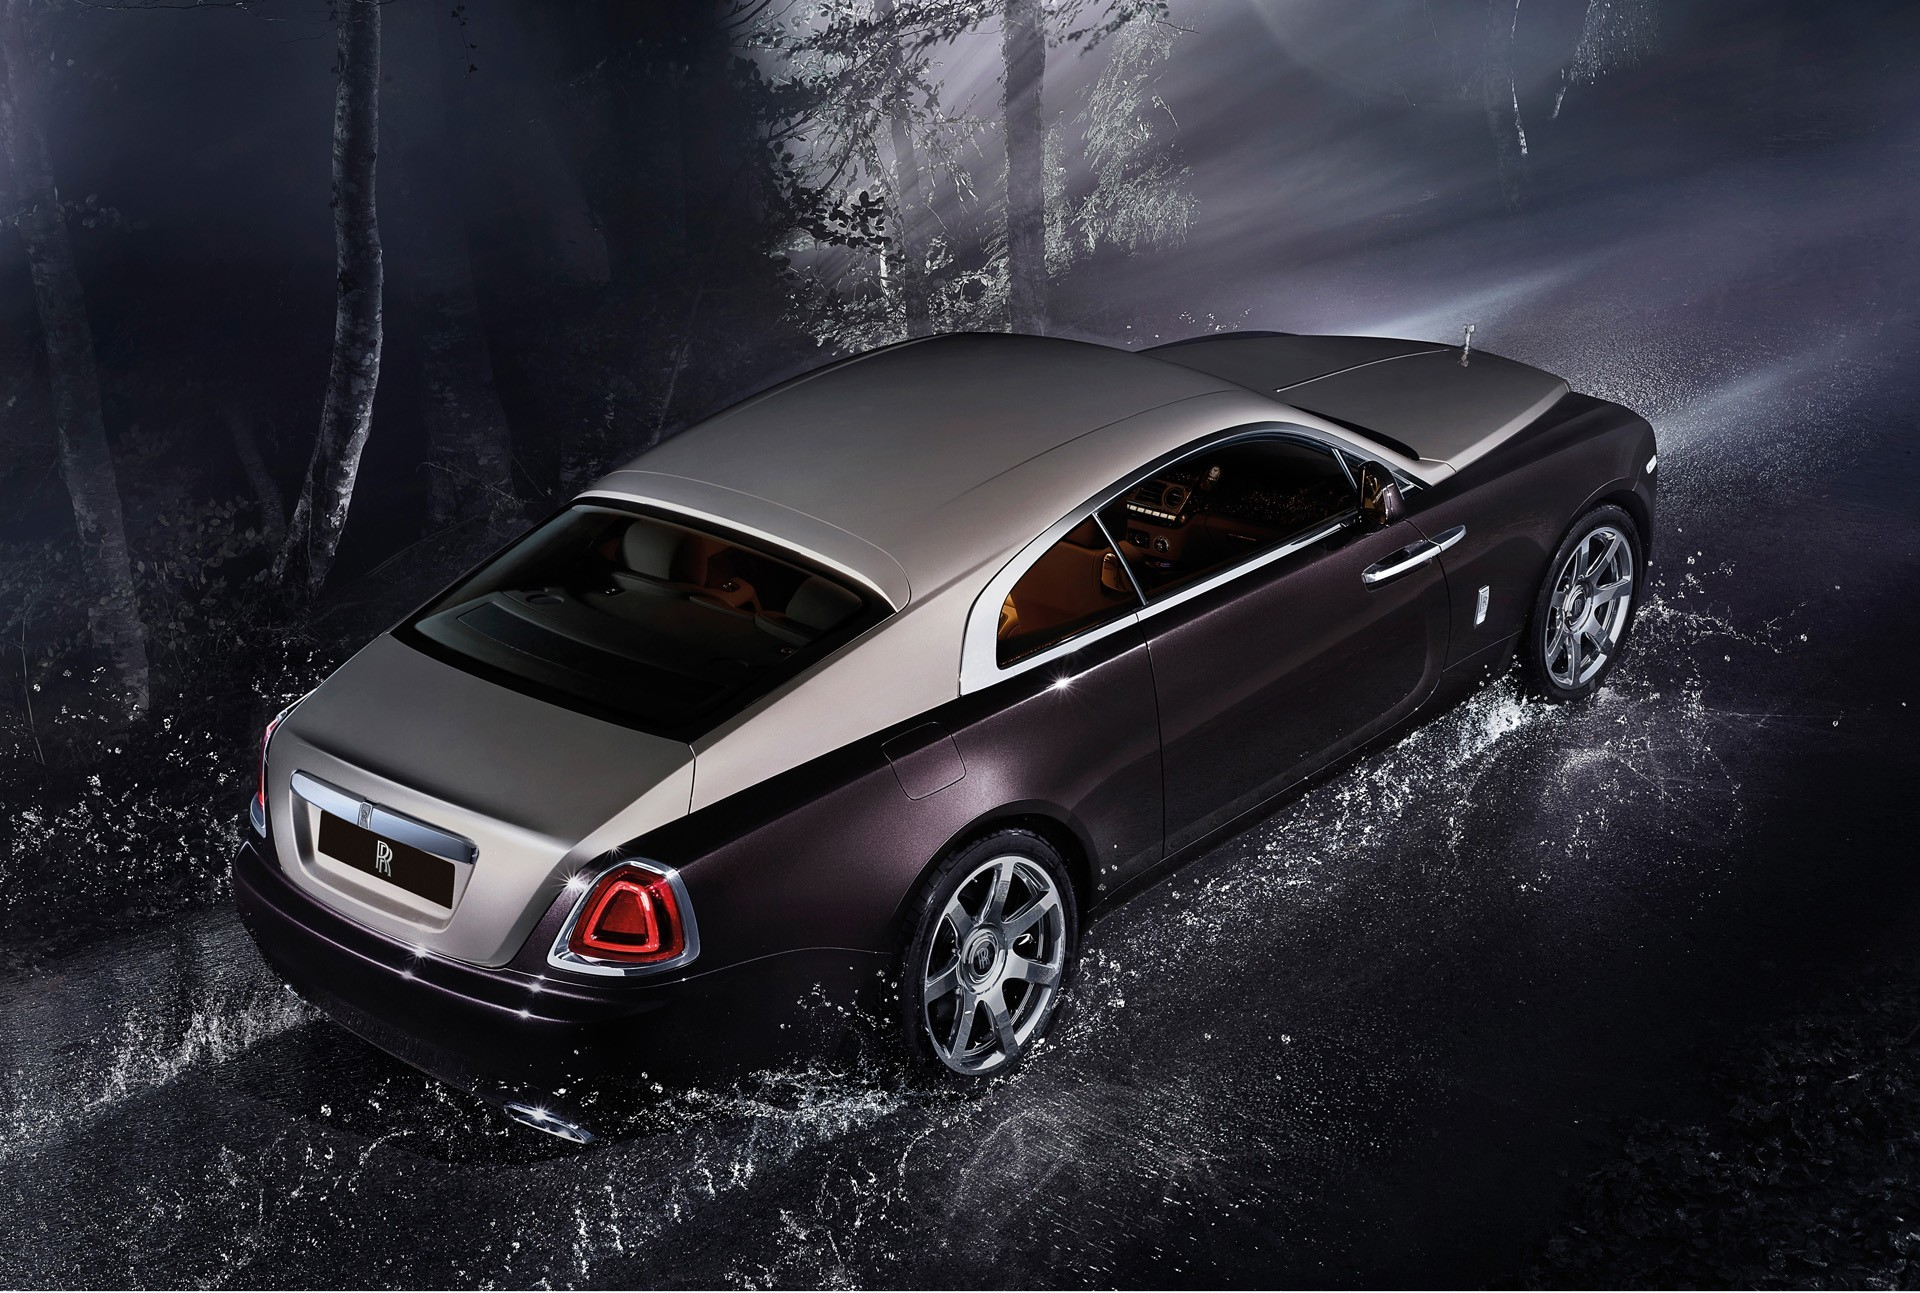 Cars Rolls Royce Wraith Wallpaper Allwallpaper In 7550 Pc En